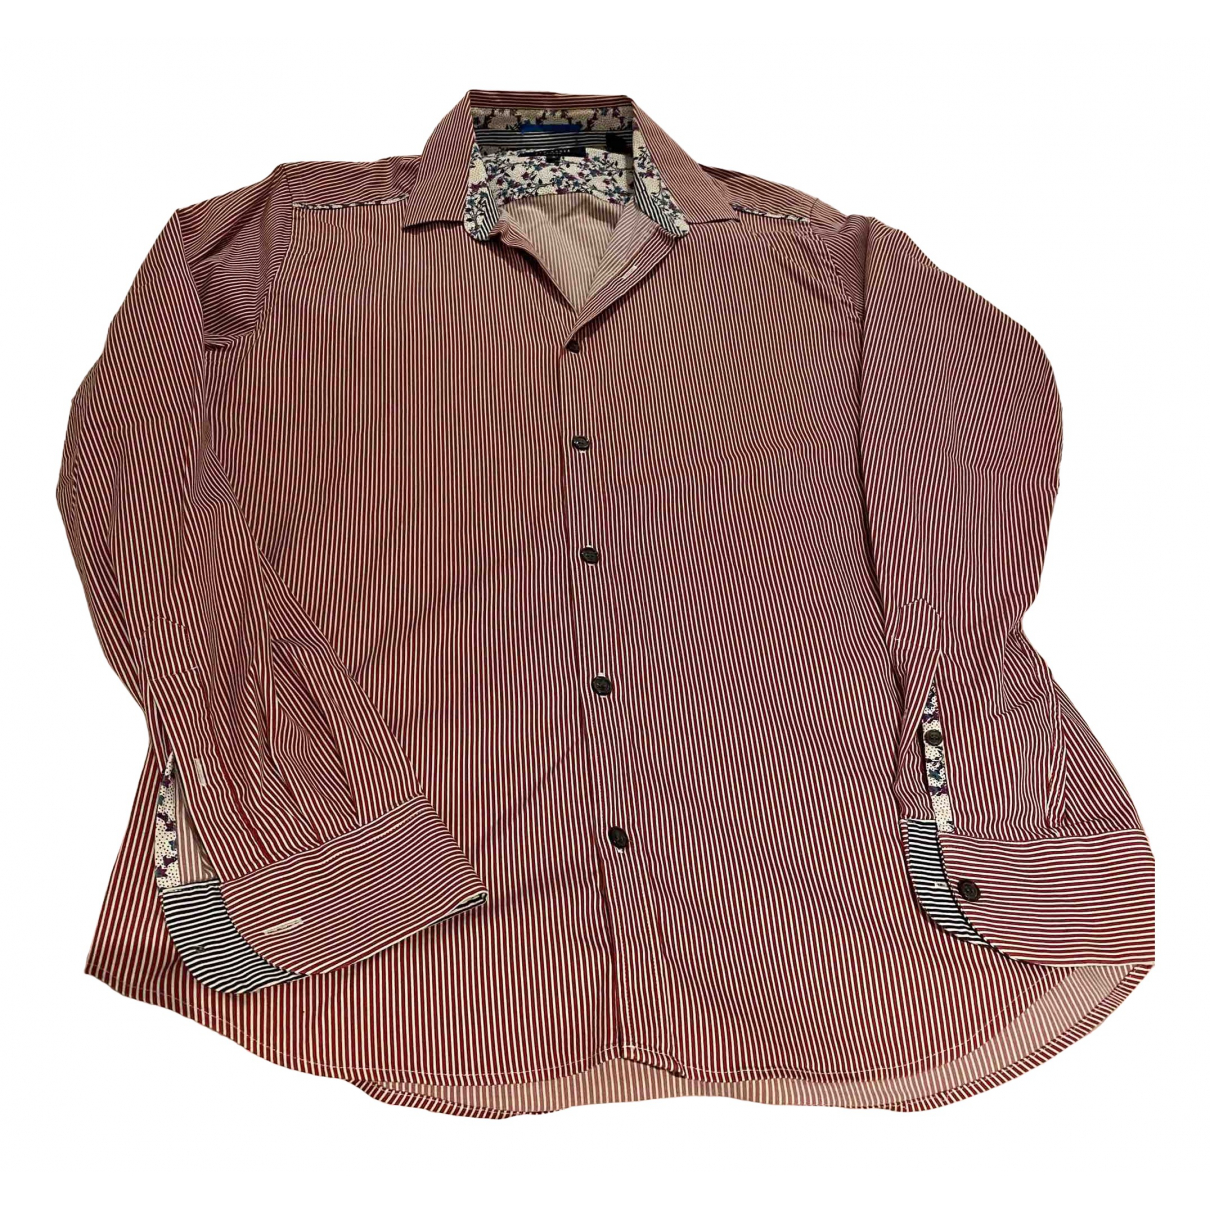 Ted Baker \N Red Cotton Shirts for Men 15.5 UK - US (tour de cou / collar)